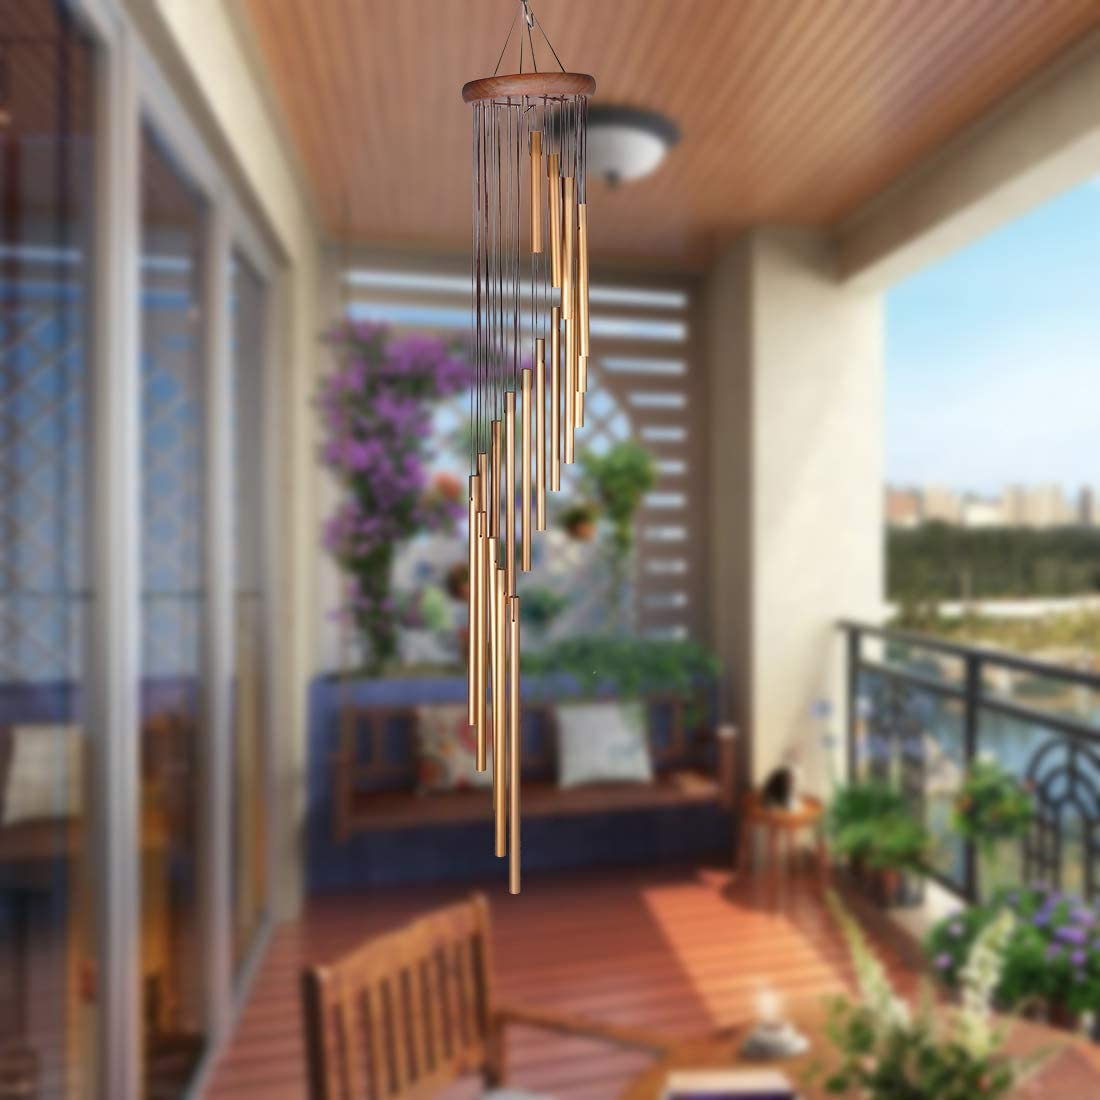 DEWEL Wind Chimes Outdoor,Amazing Grace Wind Chime with 5 Aluminum Alloy Tubes 25 Large Wind Chimes with Free 2 Pack Hooks,Home Indoor Decoration for Patio Lawn Garden Balcony Porch Backyard